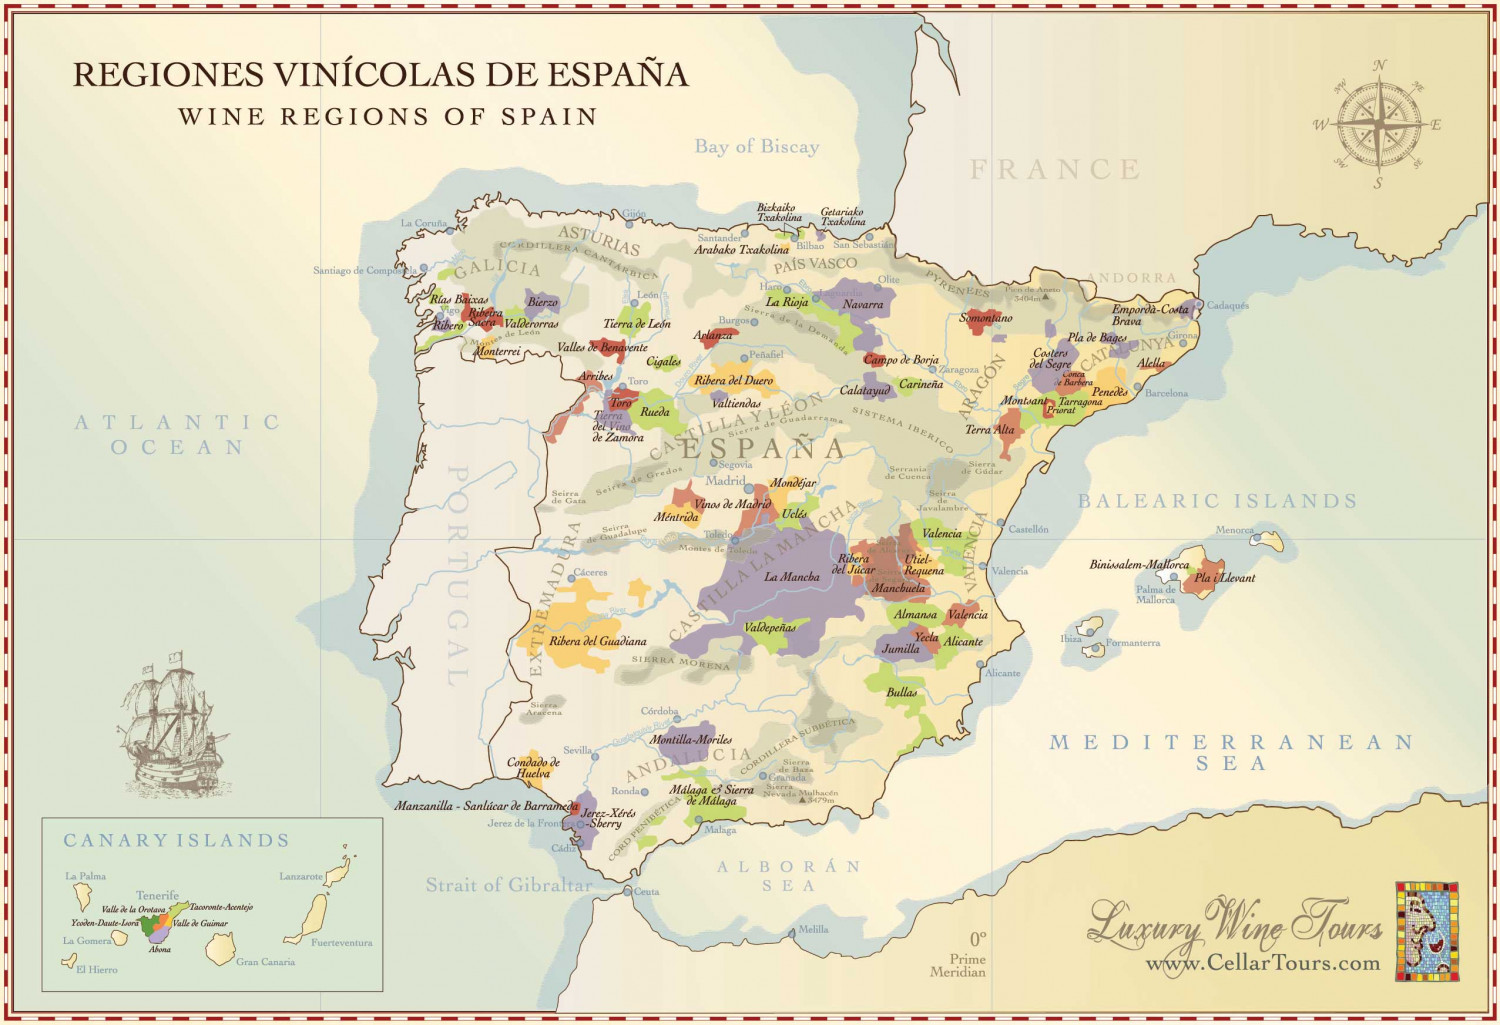 Map of Spanish Wine Regions Infographic